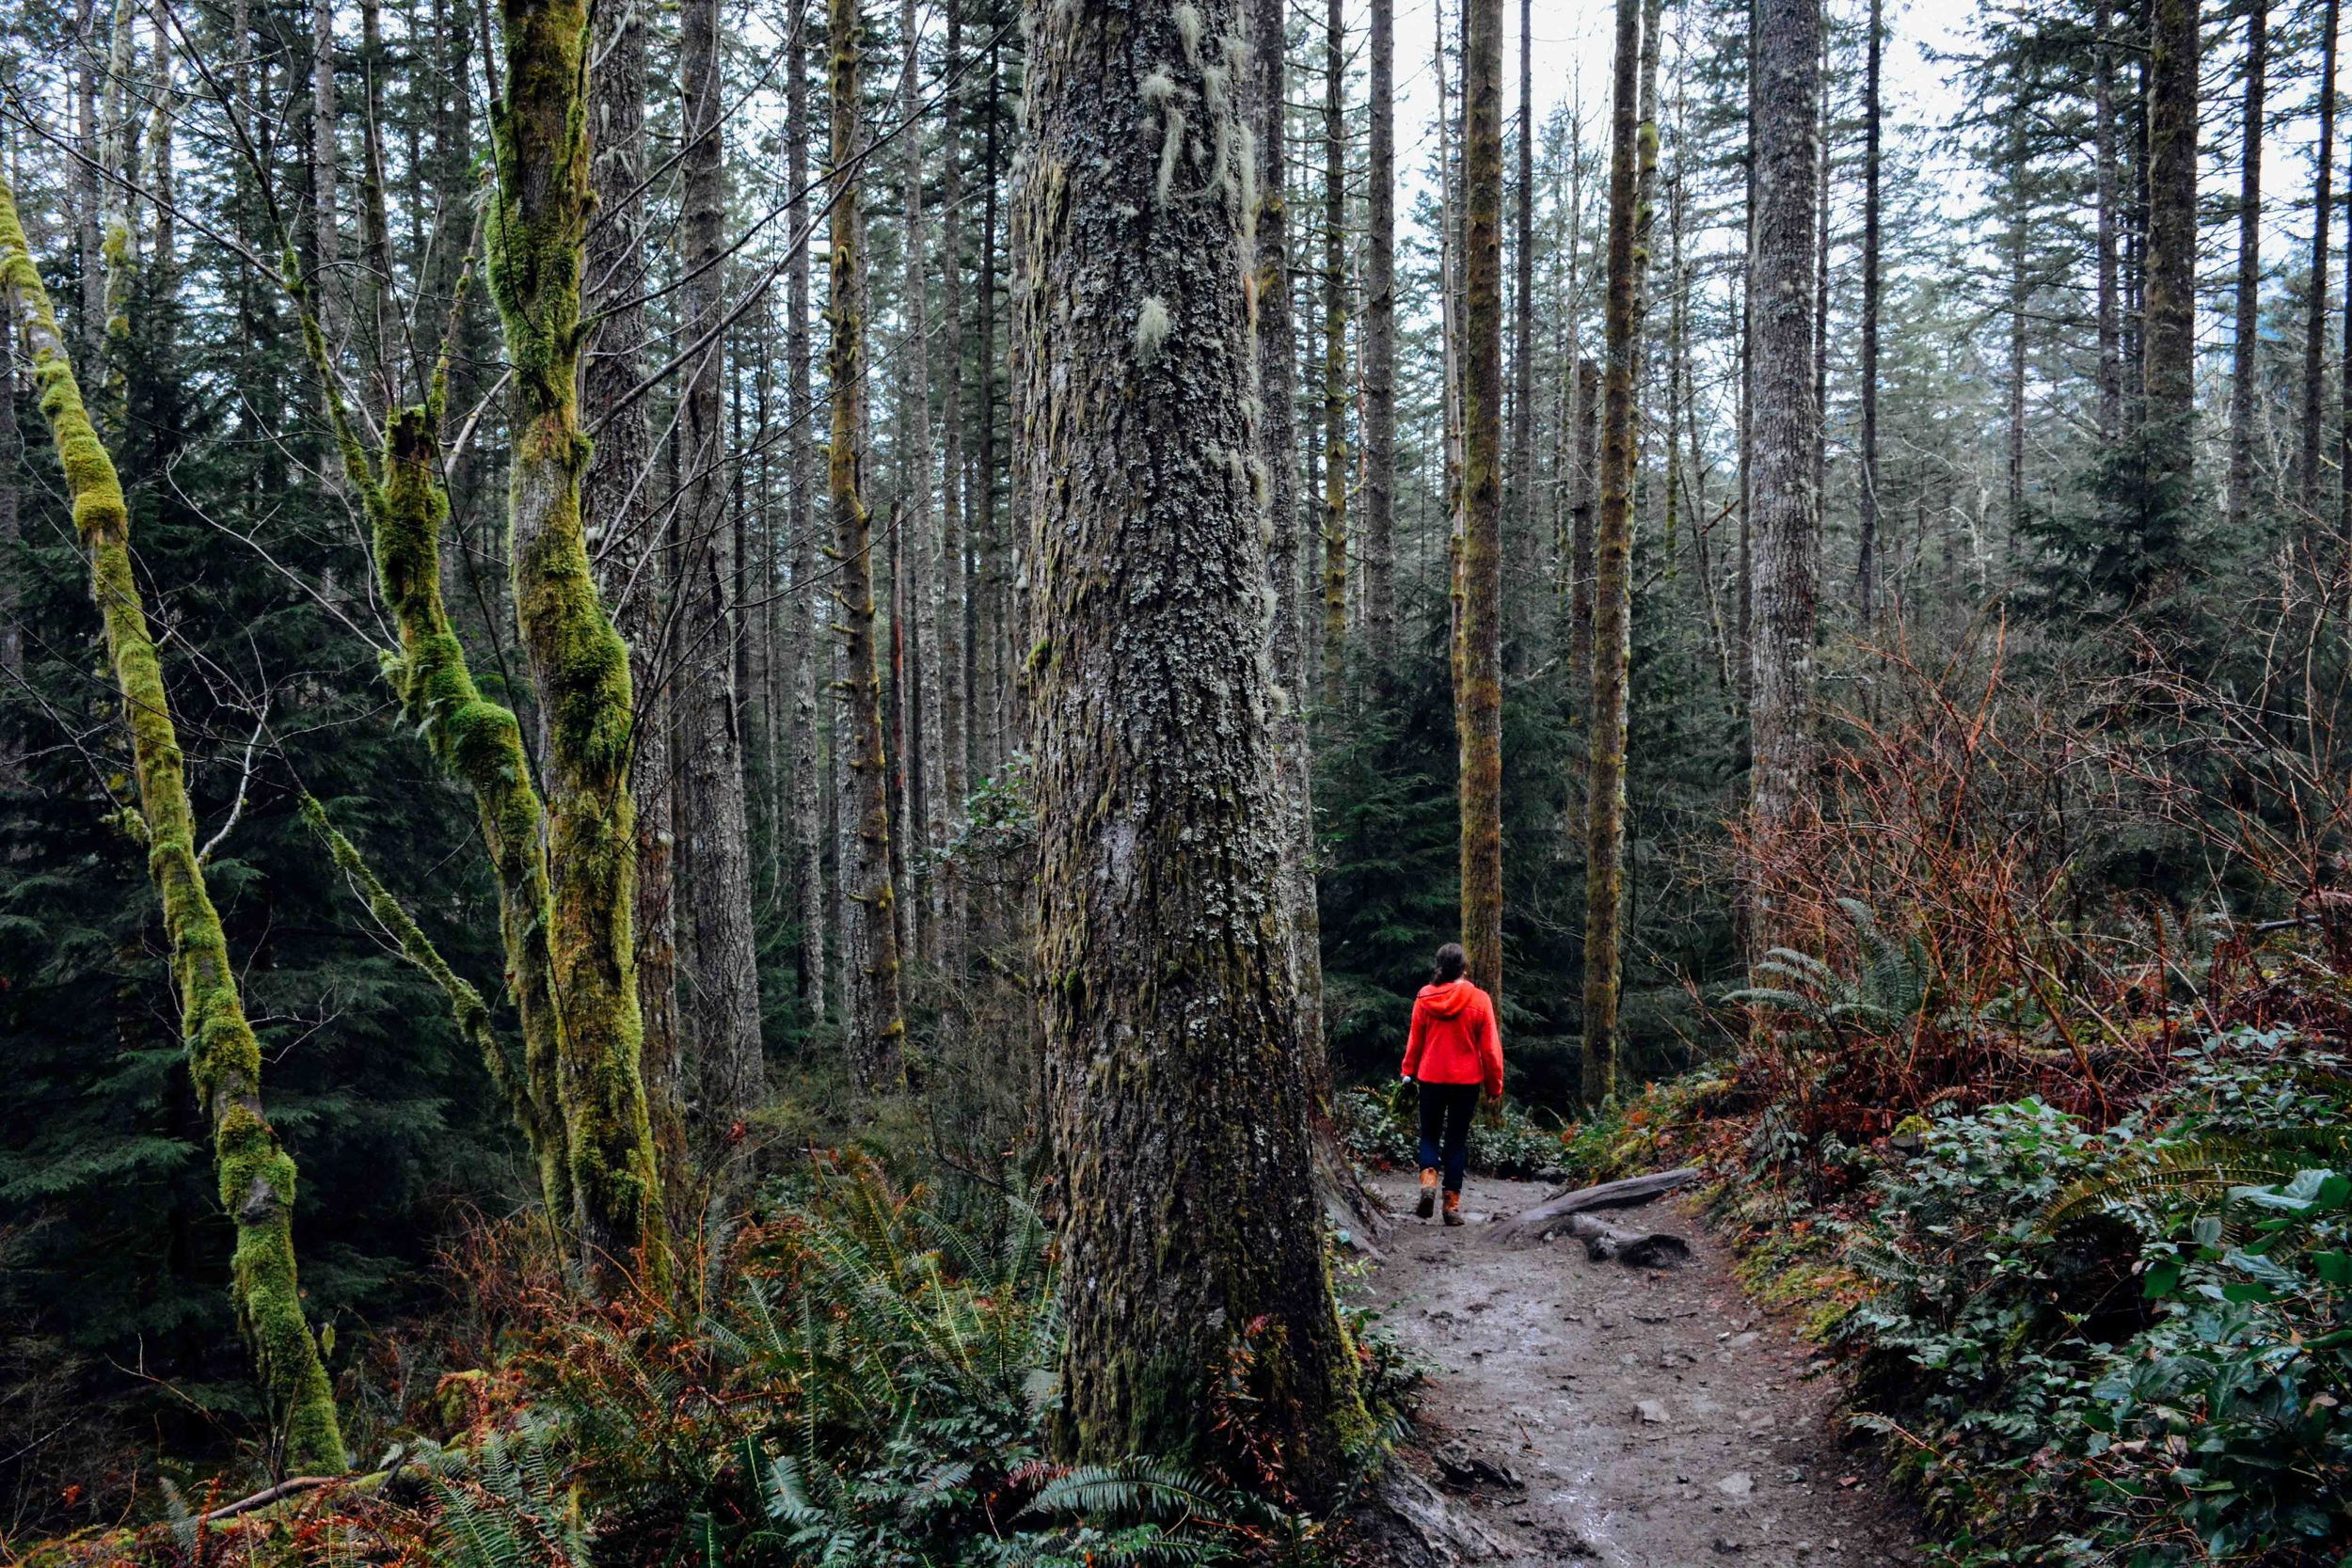 A Hike in the Mossy Woods